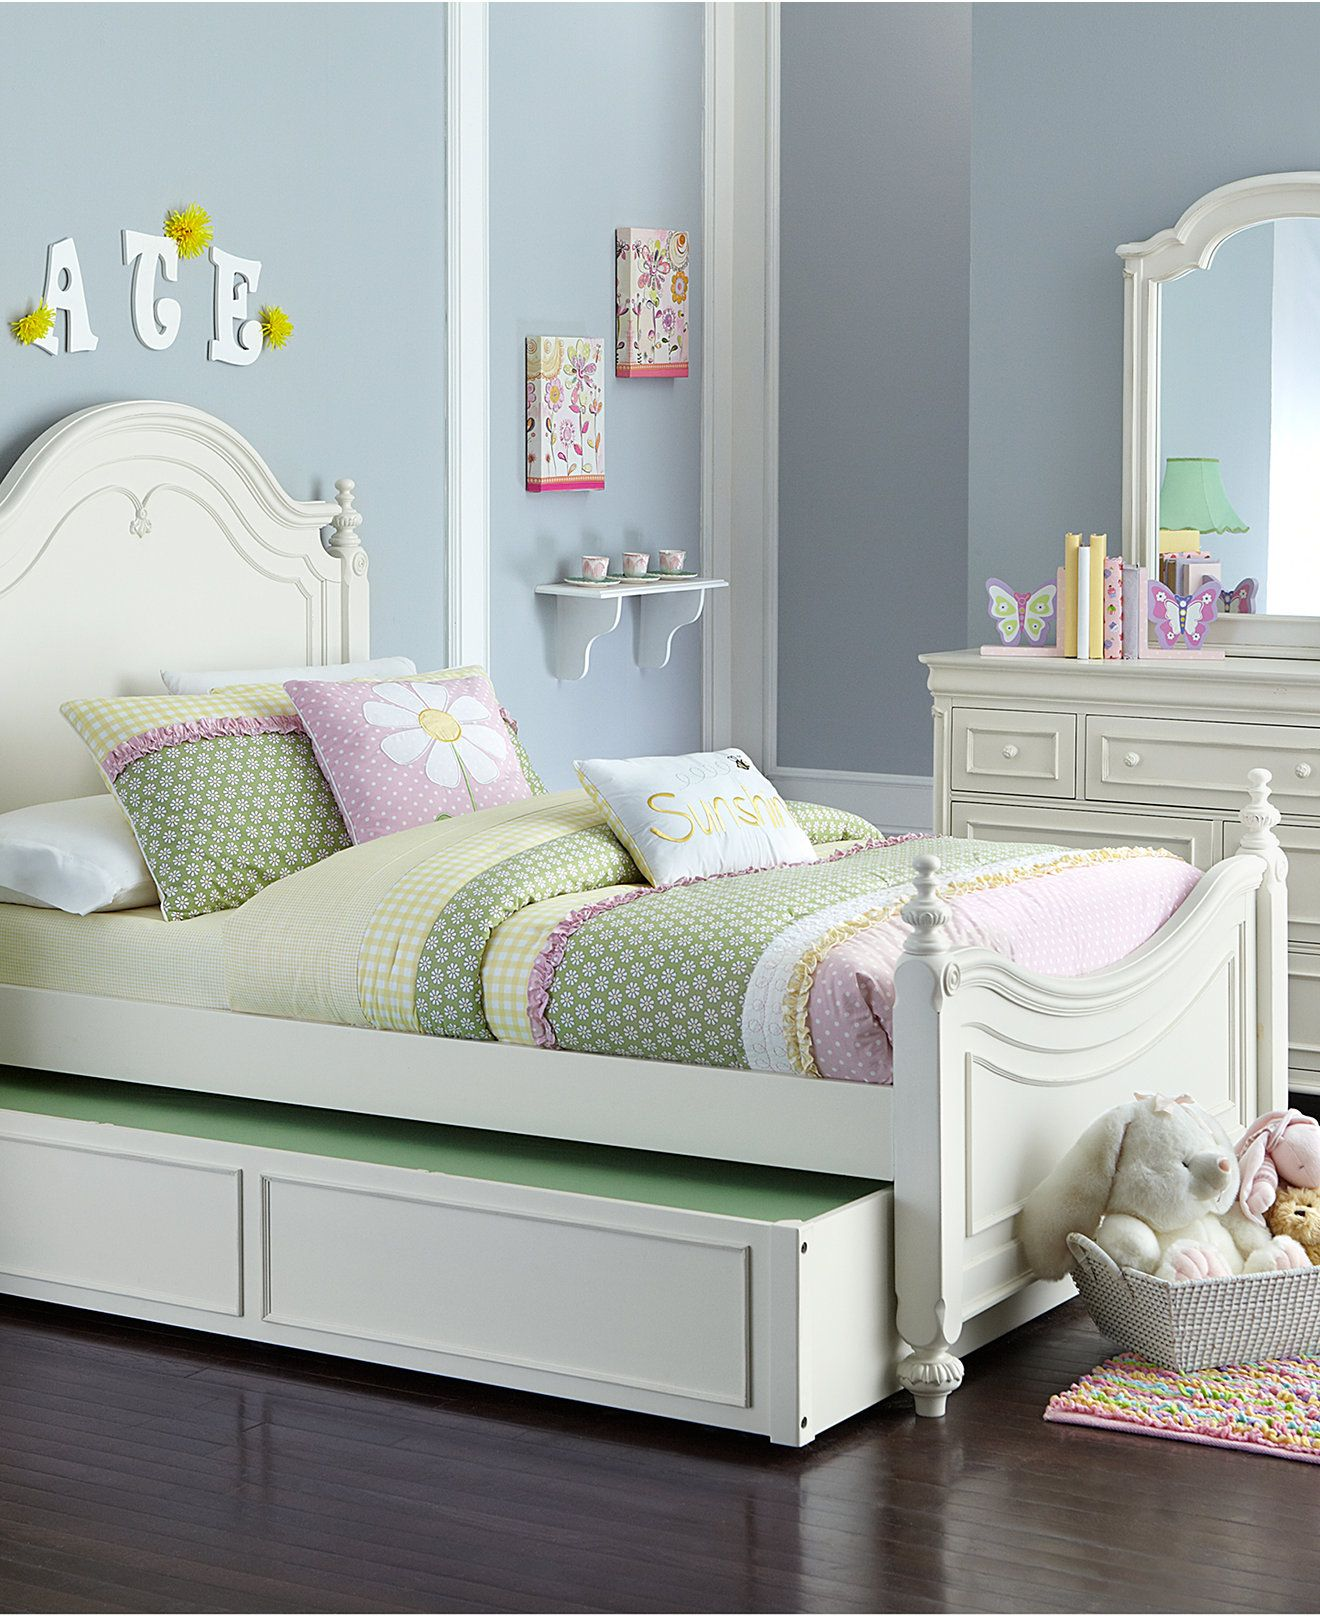 Adley Kids Bed, Twin Poster Bed  Kids & Baby